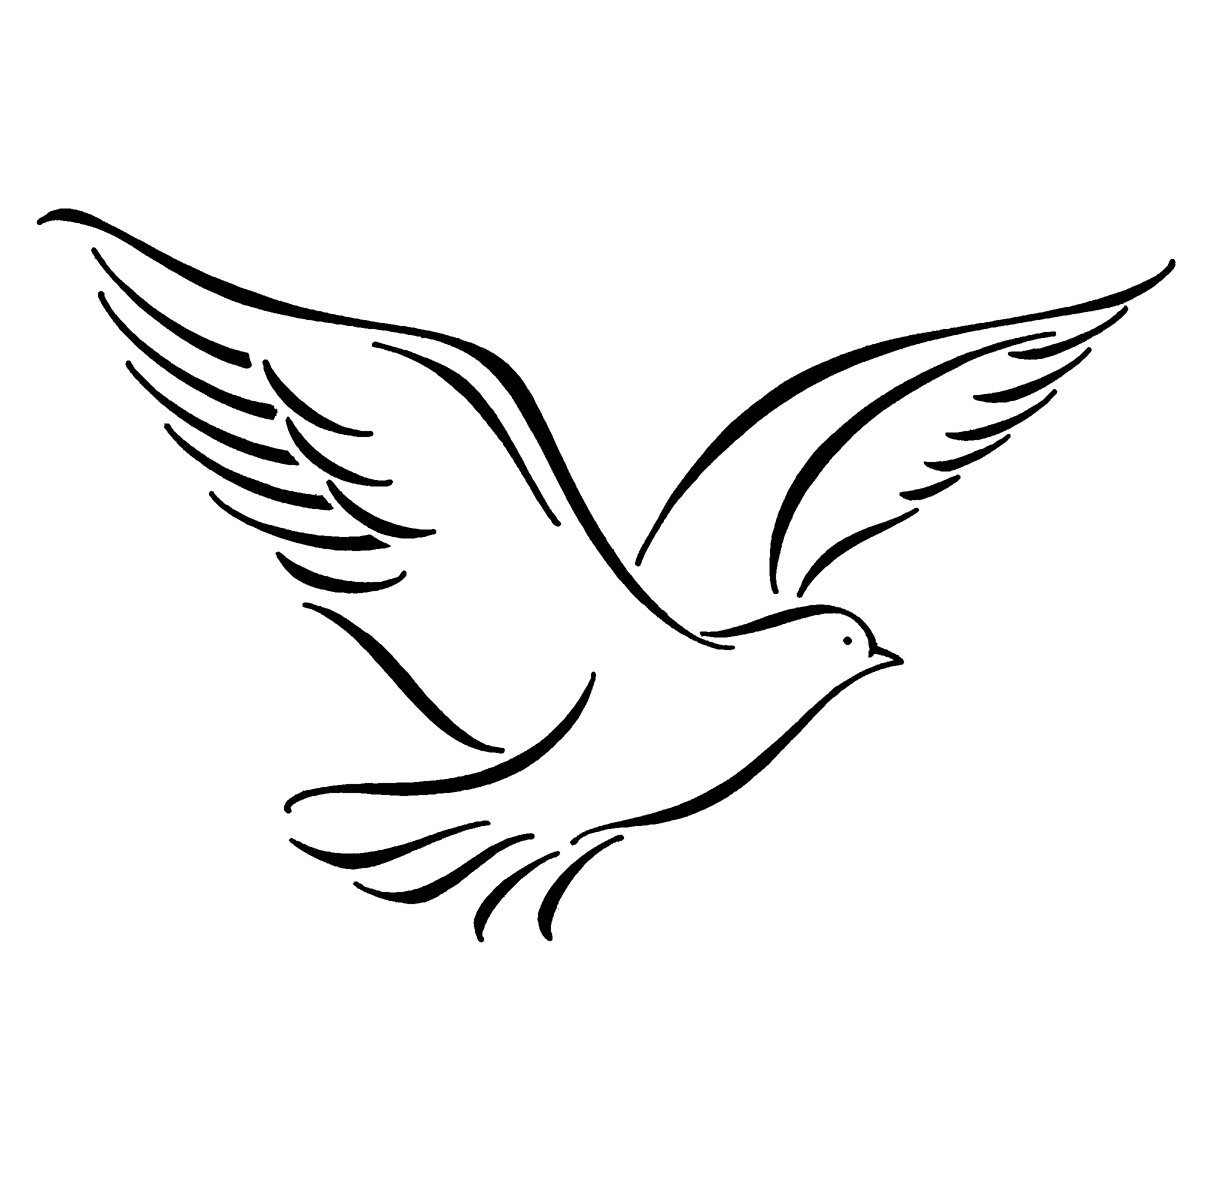 Pin Drawings Doves Flying - Free Clipart ImagesDove Bird Drawing Tattoo